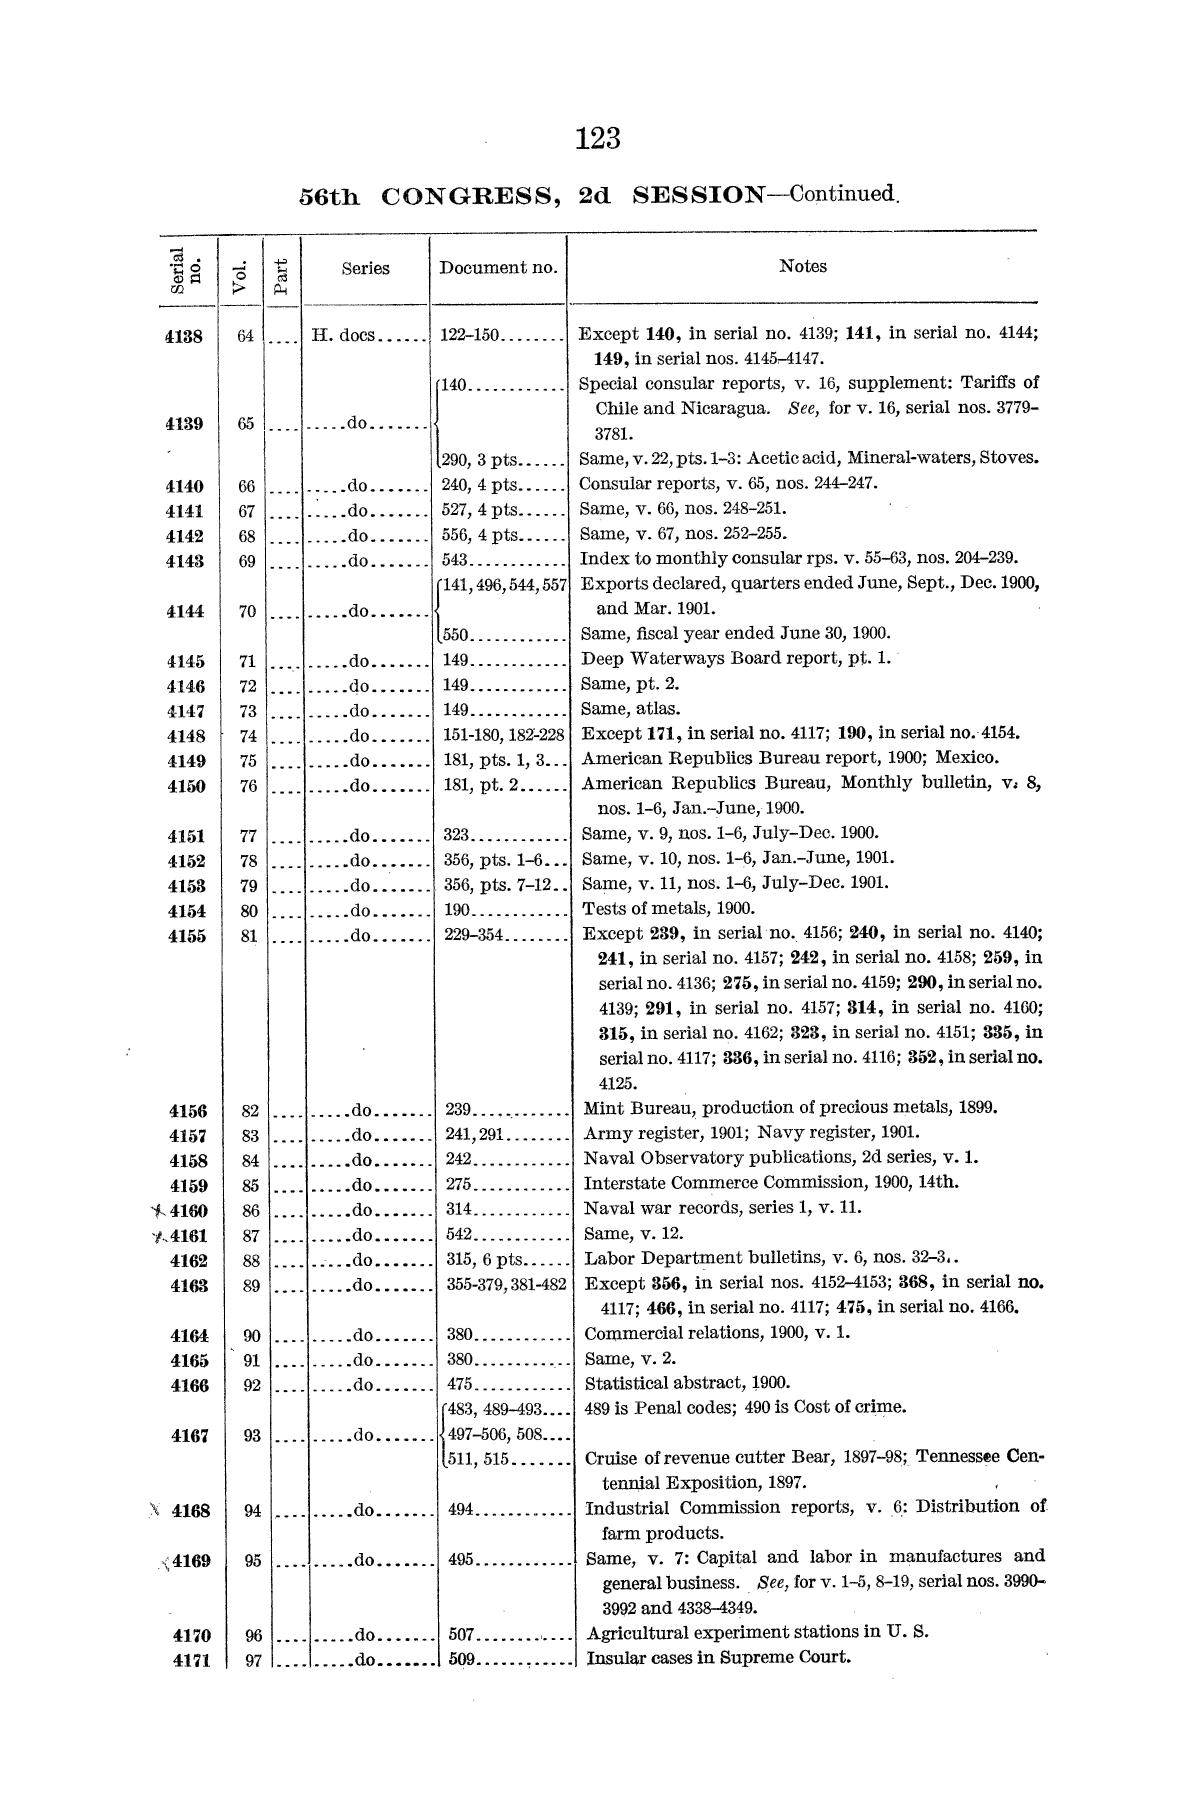 Checklist of United States Public Documents, 1789-1909, Third Edition Revised and Enlarged, Volume 1, Lists of Congressional and Departmental Publications                                                                                                      123